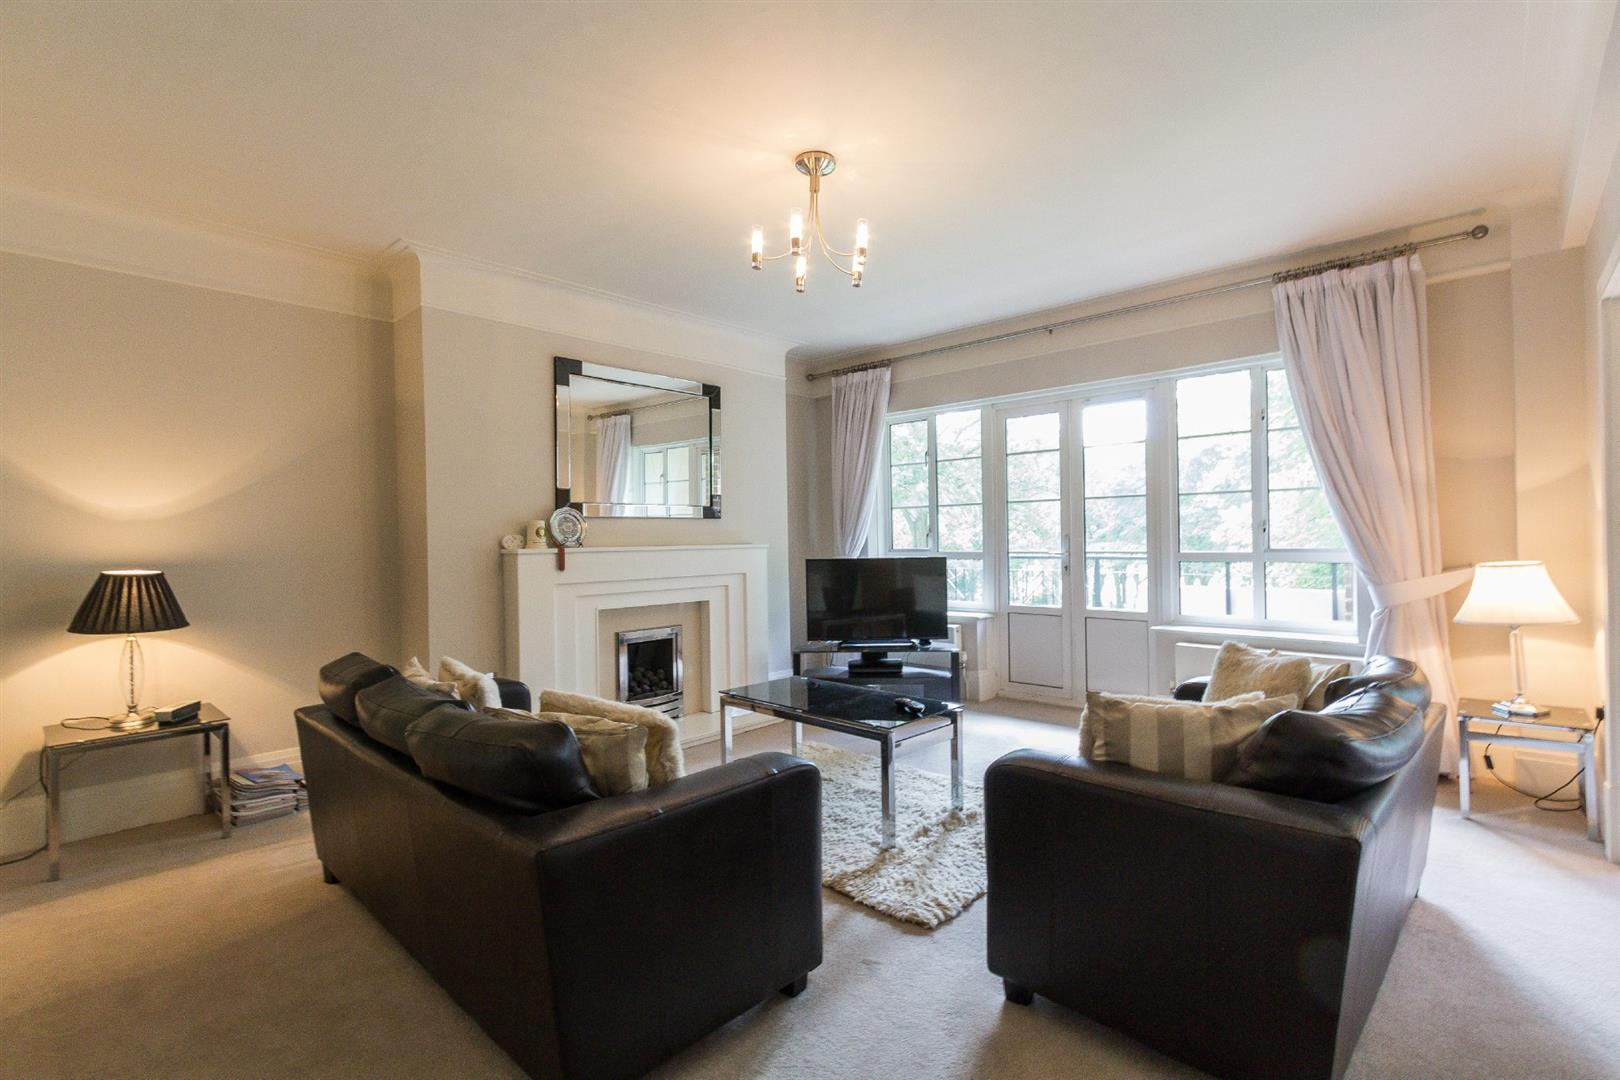 3 bed apartment to rent in Gosforth, NE3 4YD, NE3